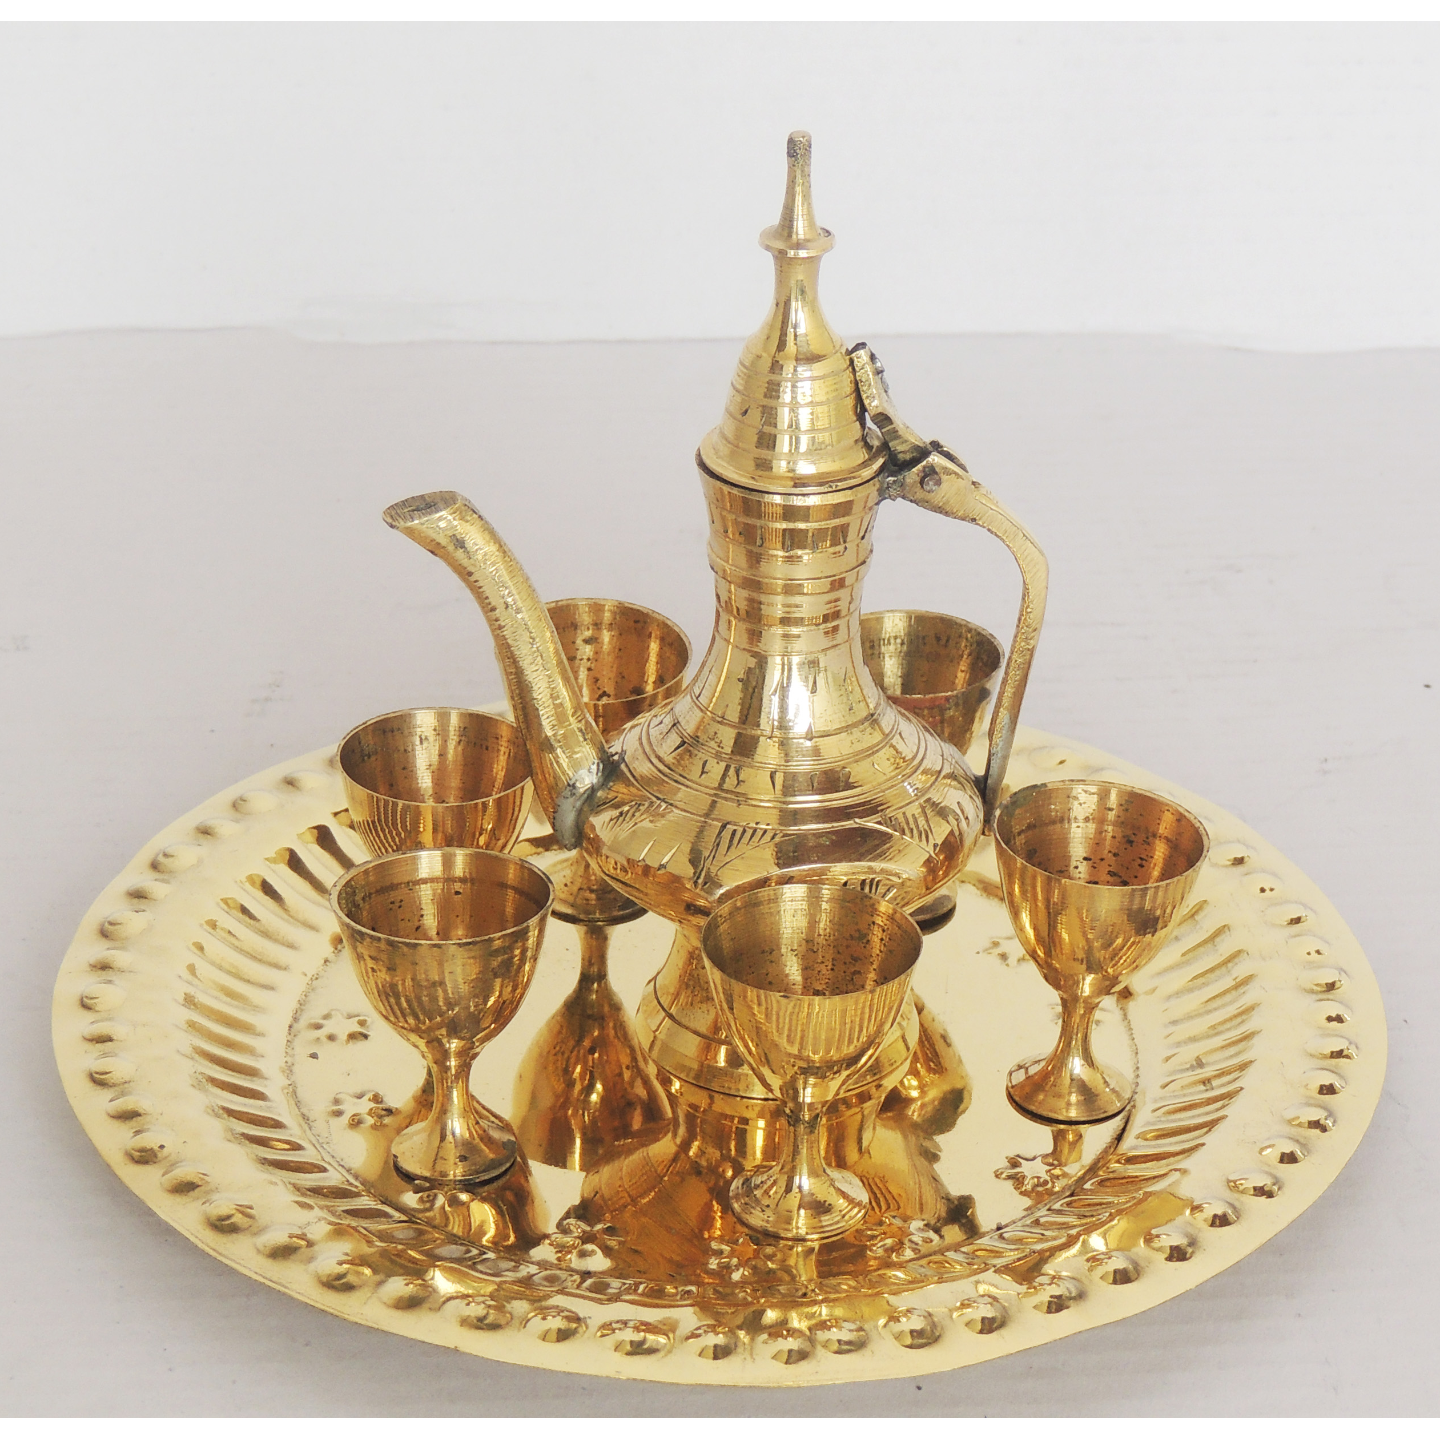 Brass Mini Miniature Wine Set for Children Playing  (Z247 A)6.2*6.2*4.2